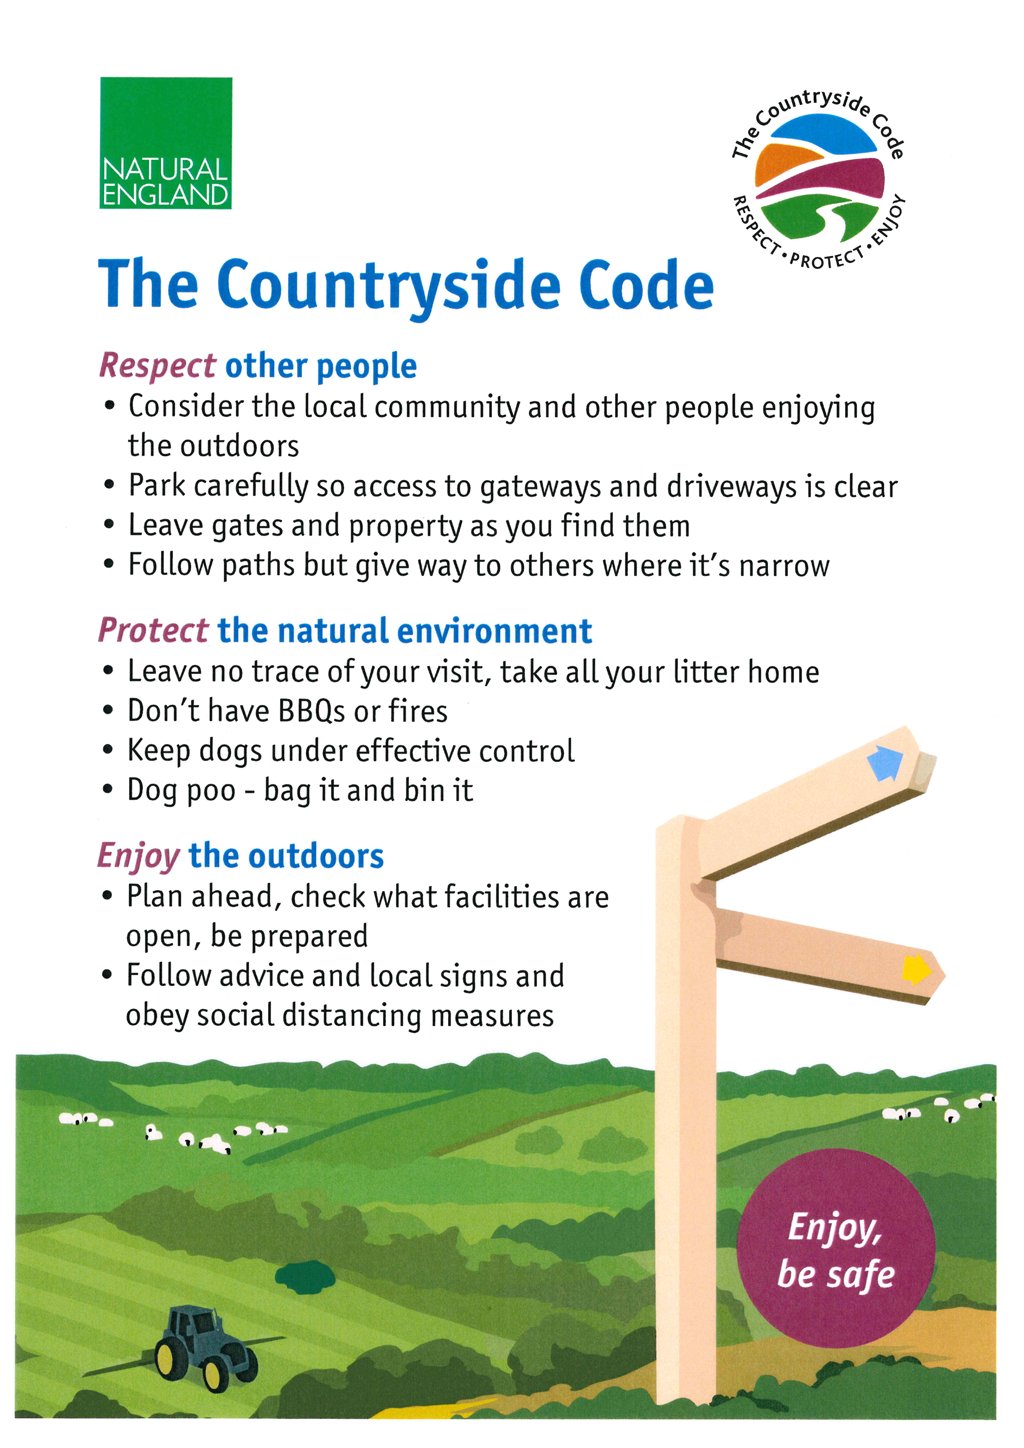 The Countryside Code Poster